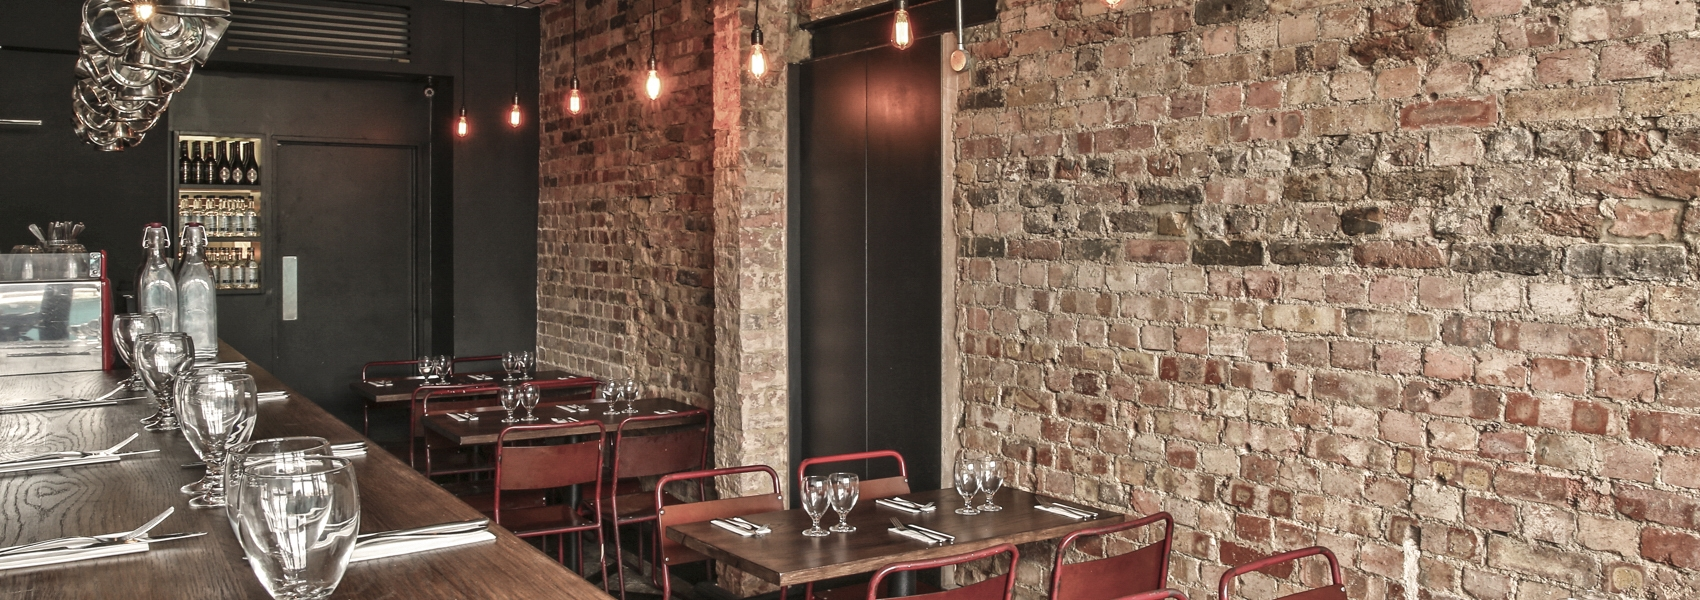 Review: Gunpowder, London